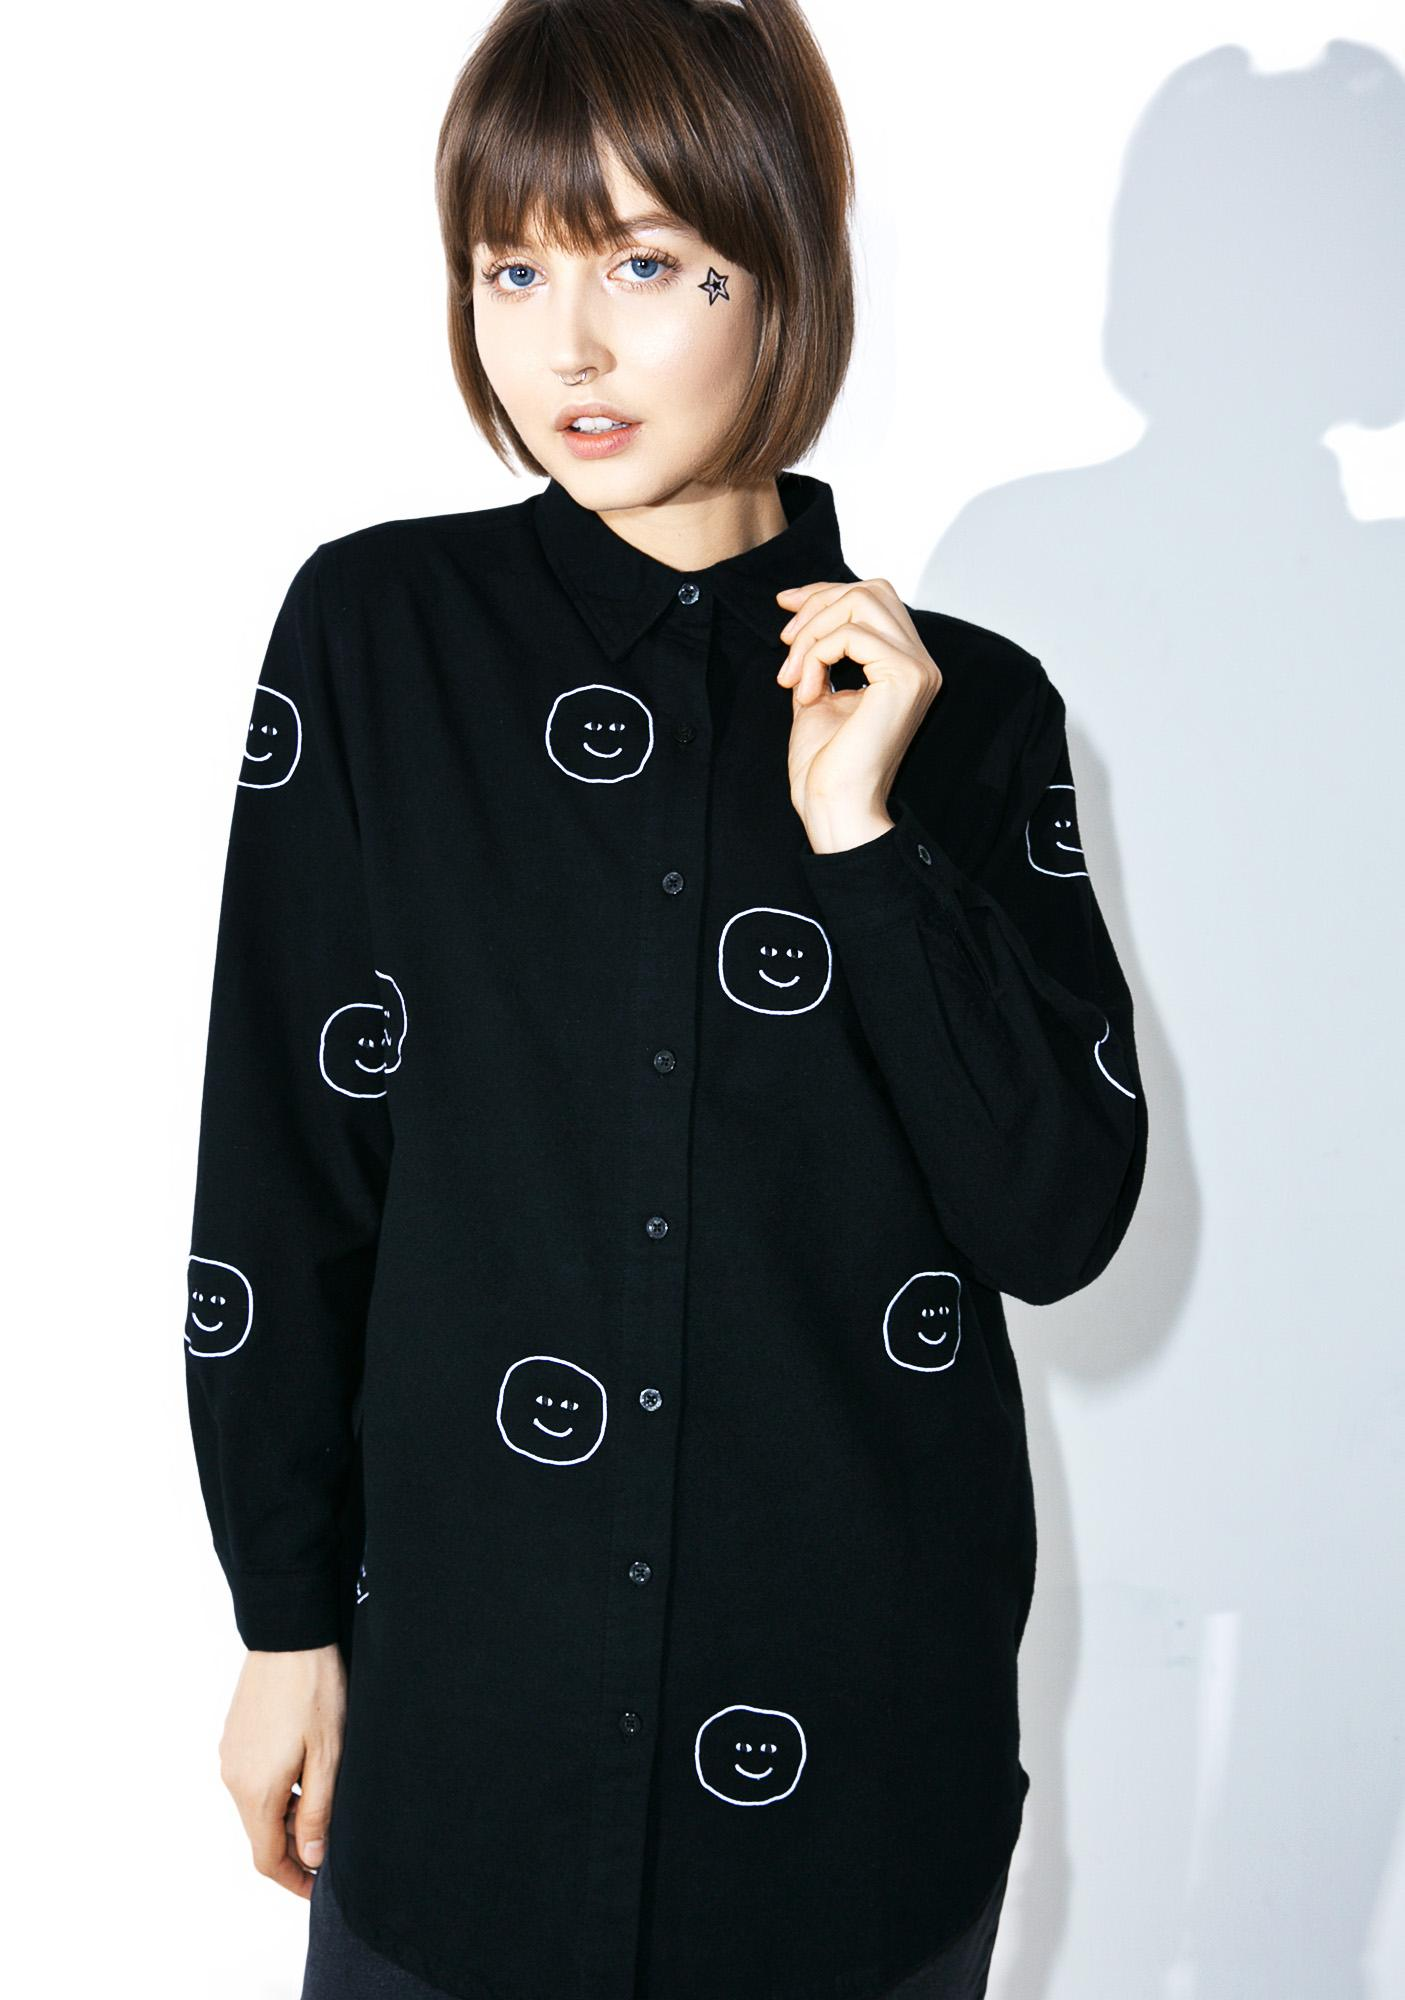 Lazy Oaf Creep Face Shirt